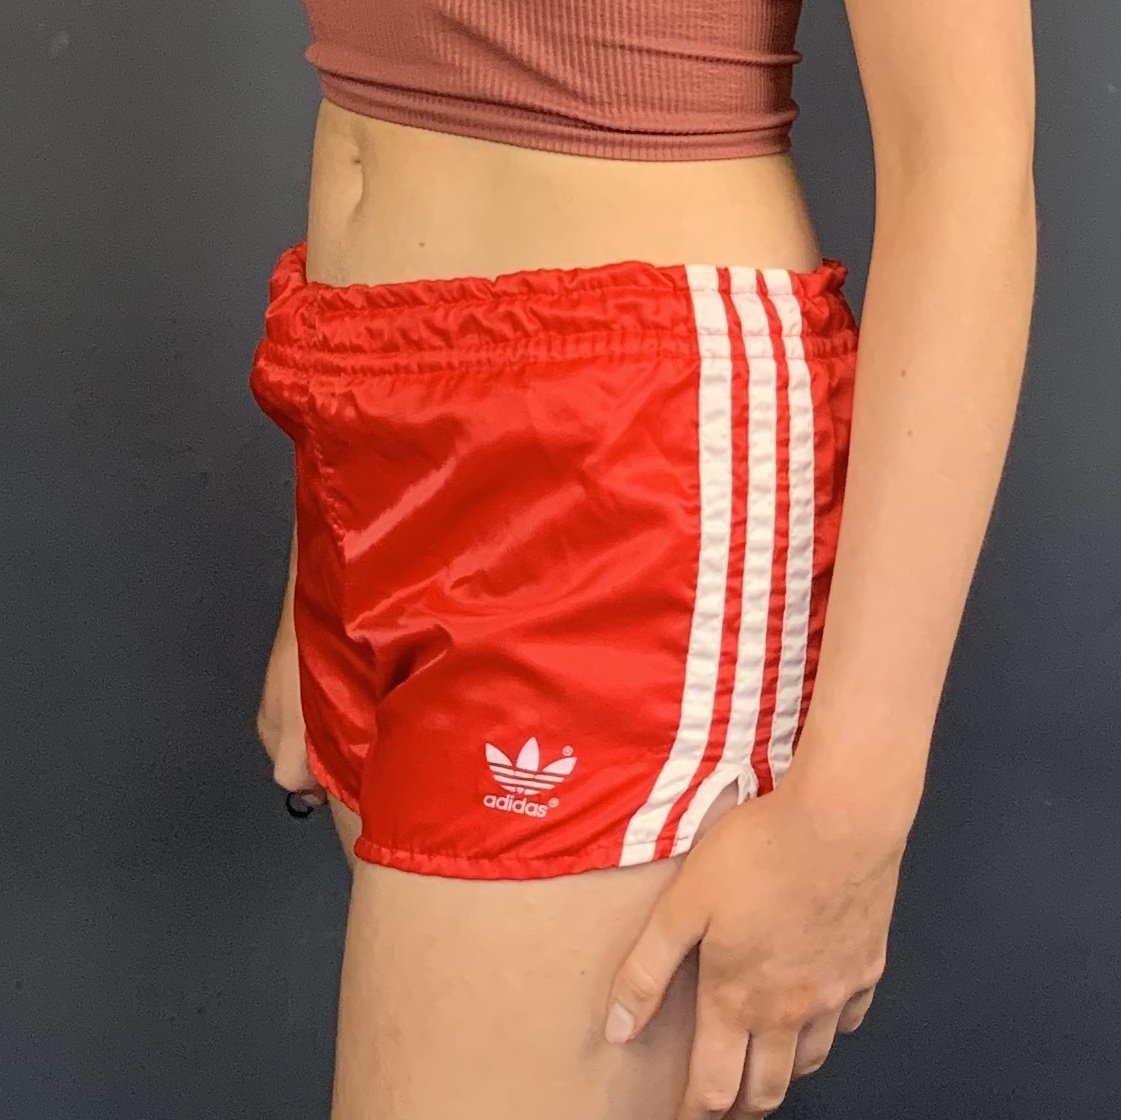 Vintage Adidas Sprinter Shorts - Small - Vintique Clothing